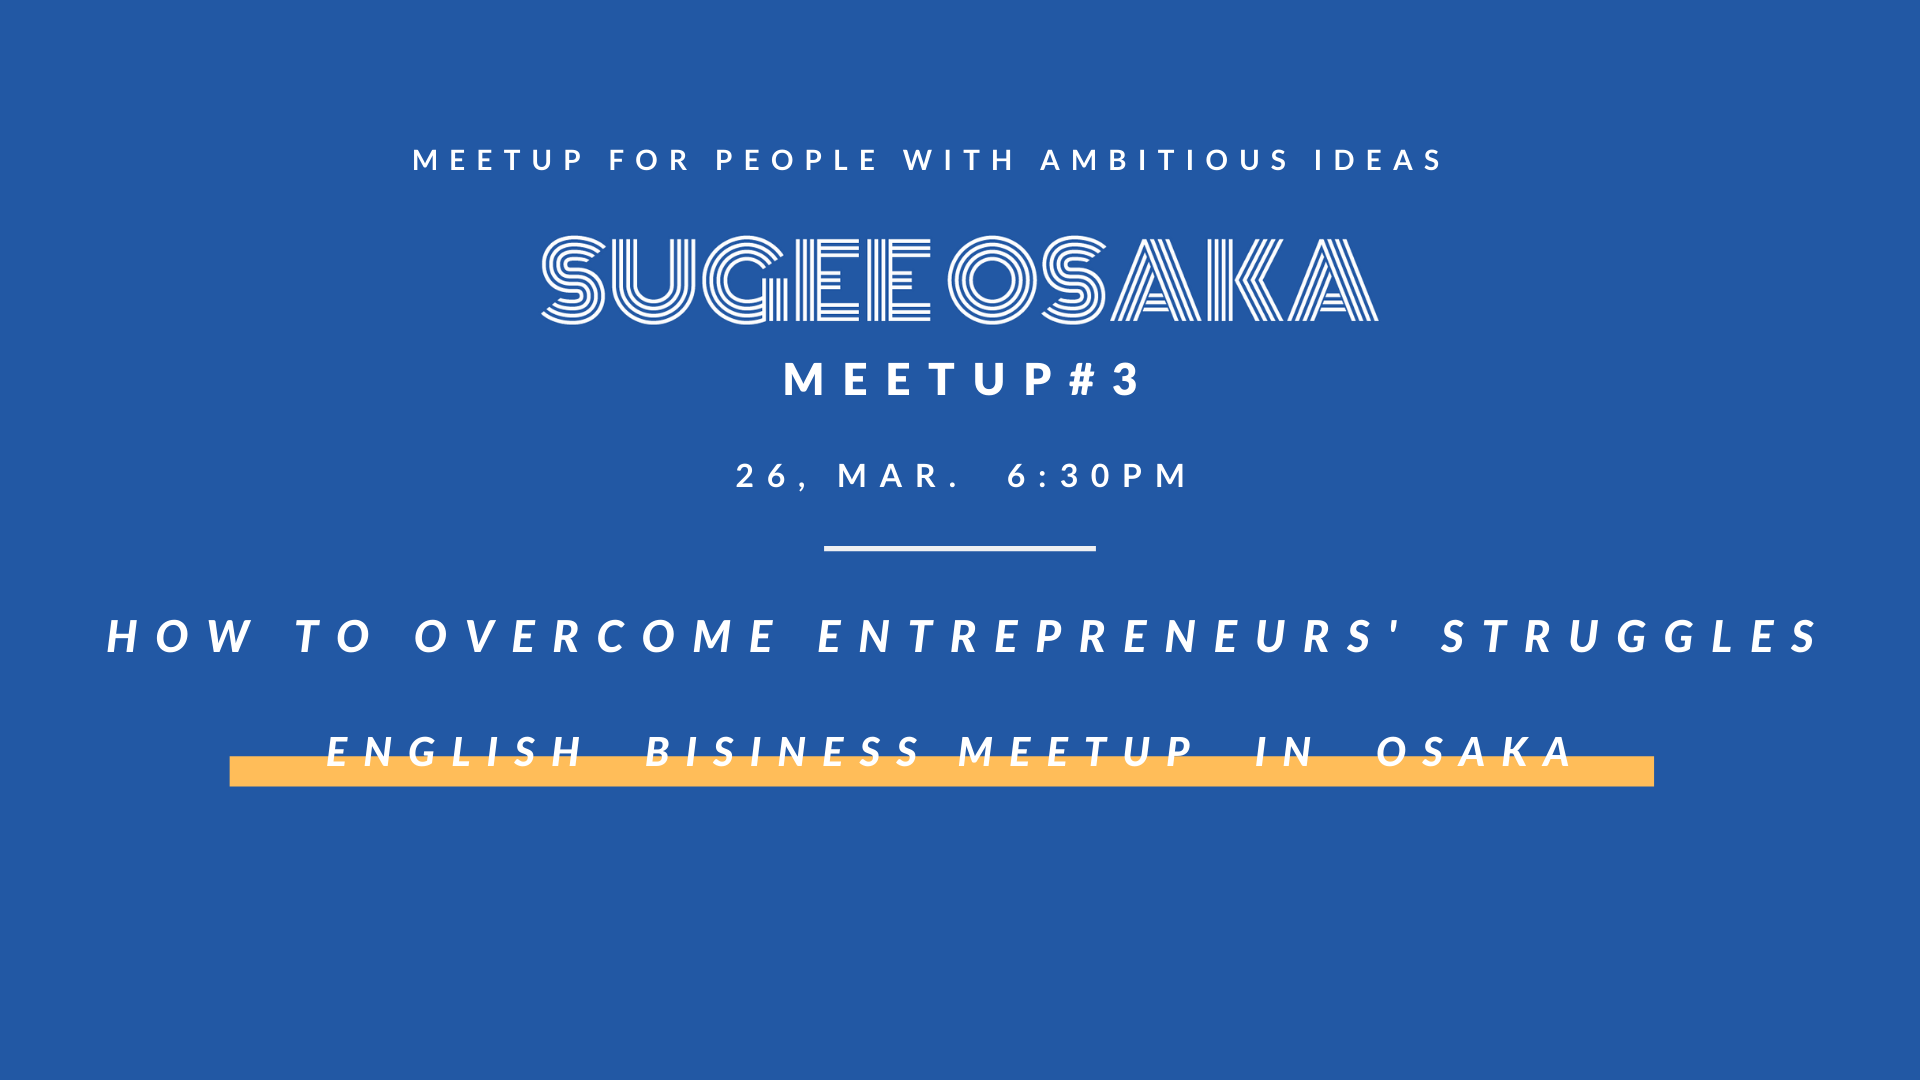 【Cancelled】SUGEE MEETUP #3